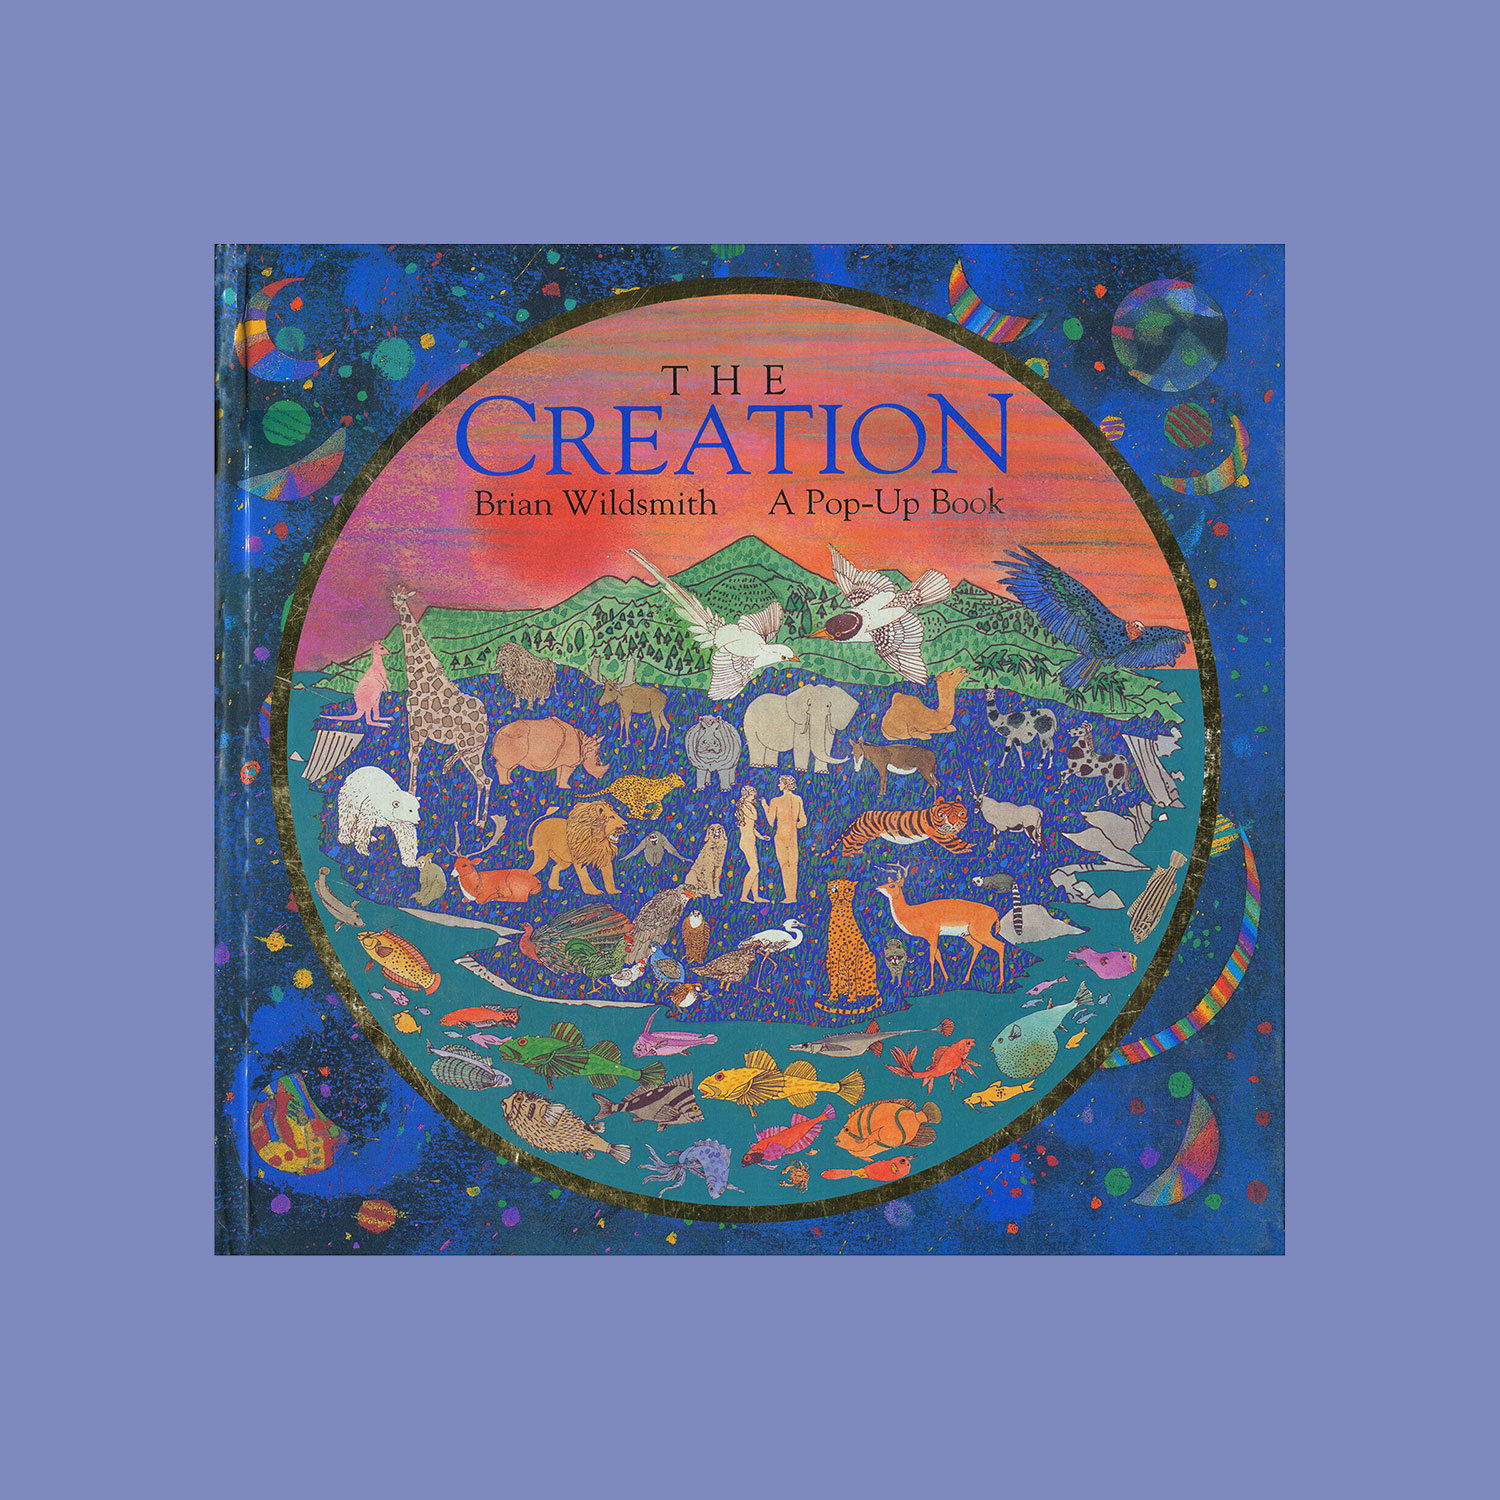 """THE CREATION - 1995""""Five interactive 3-D spreads depict the creation story from the book of Genesis. Man and woman, plants and trees, the creatures of the sea and air, all gods handiwork fill this full colour, vibrant, book.""""""""...delicious illustrations and beautifully designed, awe-inspiring pop-ups...Wildsmith captures the wonder and poetry of the creation story in a book that families will treasure.""""Times Educational Supplement"""